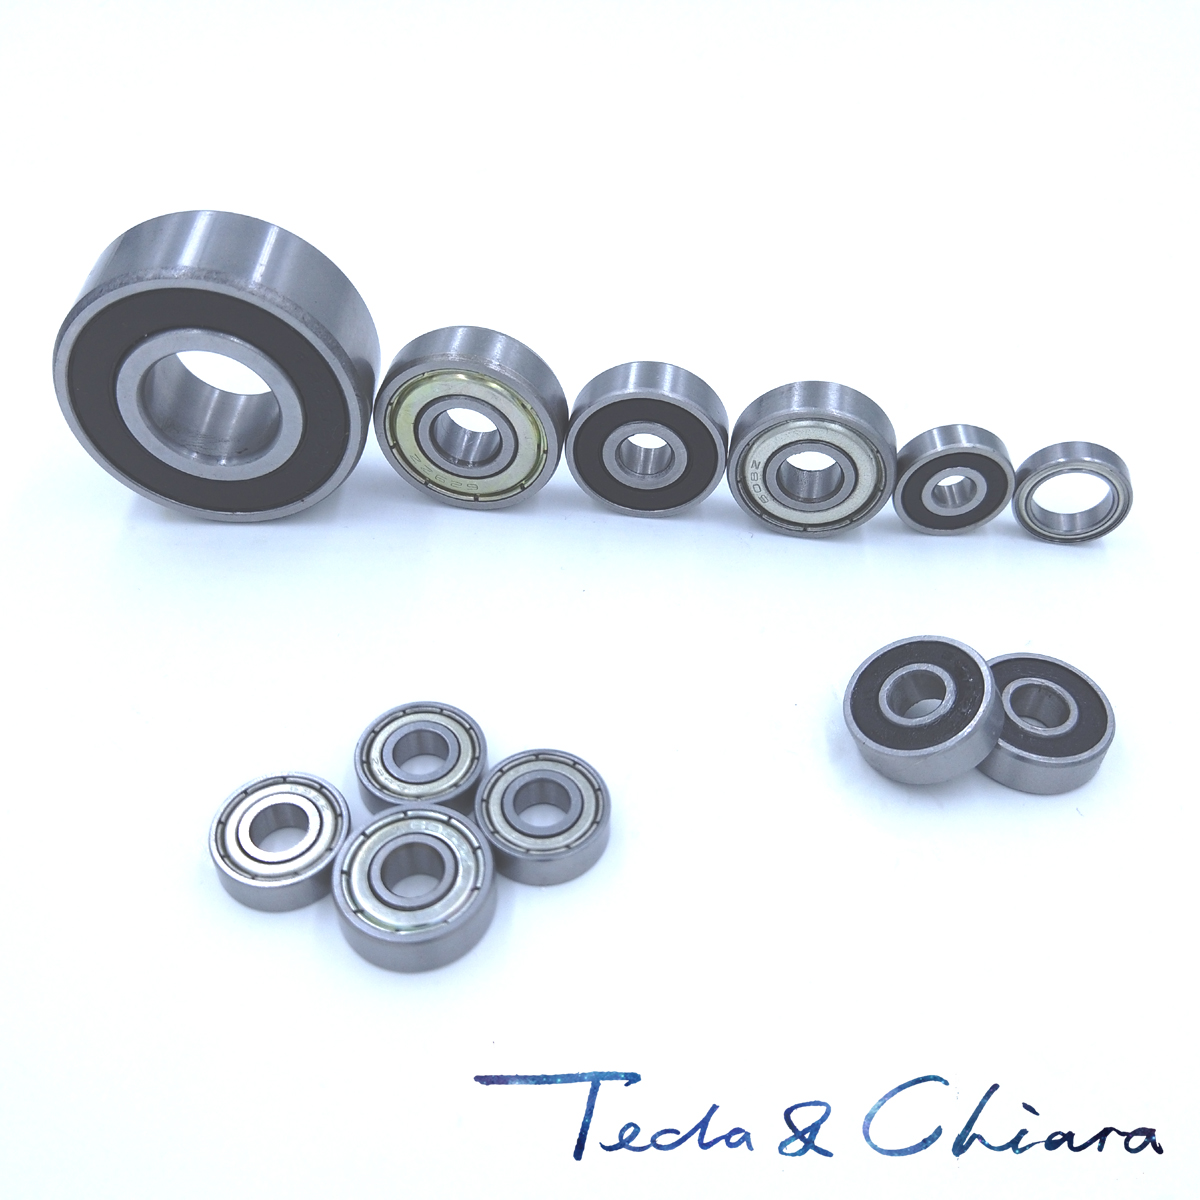 R188 R188ZZ R188RS R188-2Z R188Z ZZ RS RZ 2RZ Deep Groove Ball Bearings 6.35 X 12.7 X 4.76mm 1/4